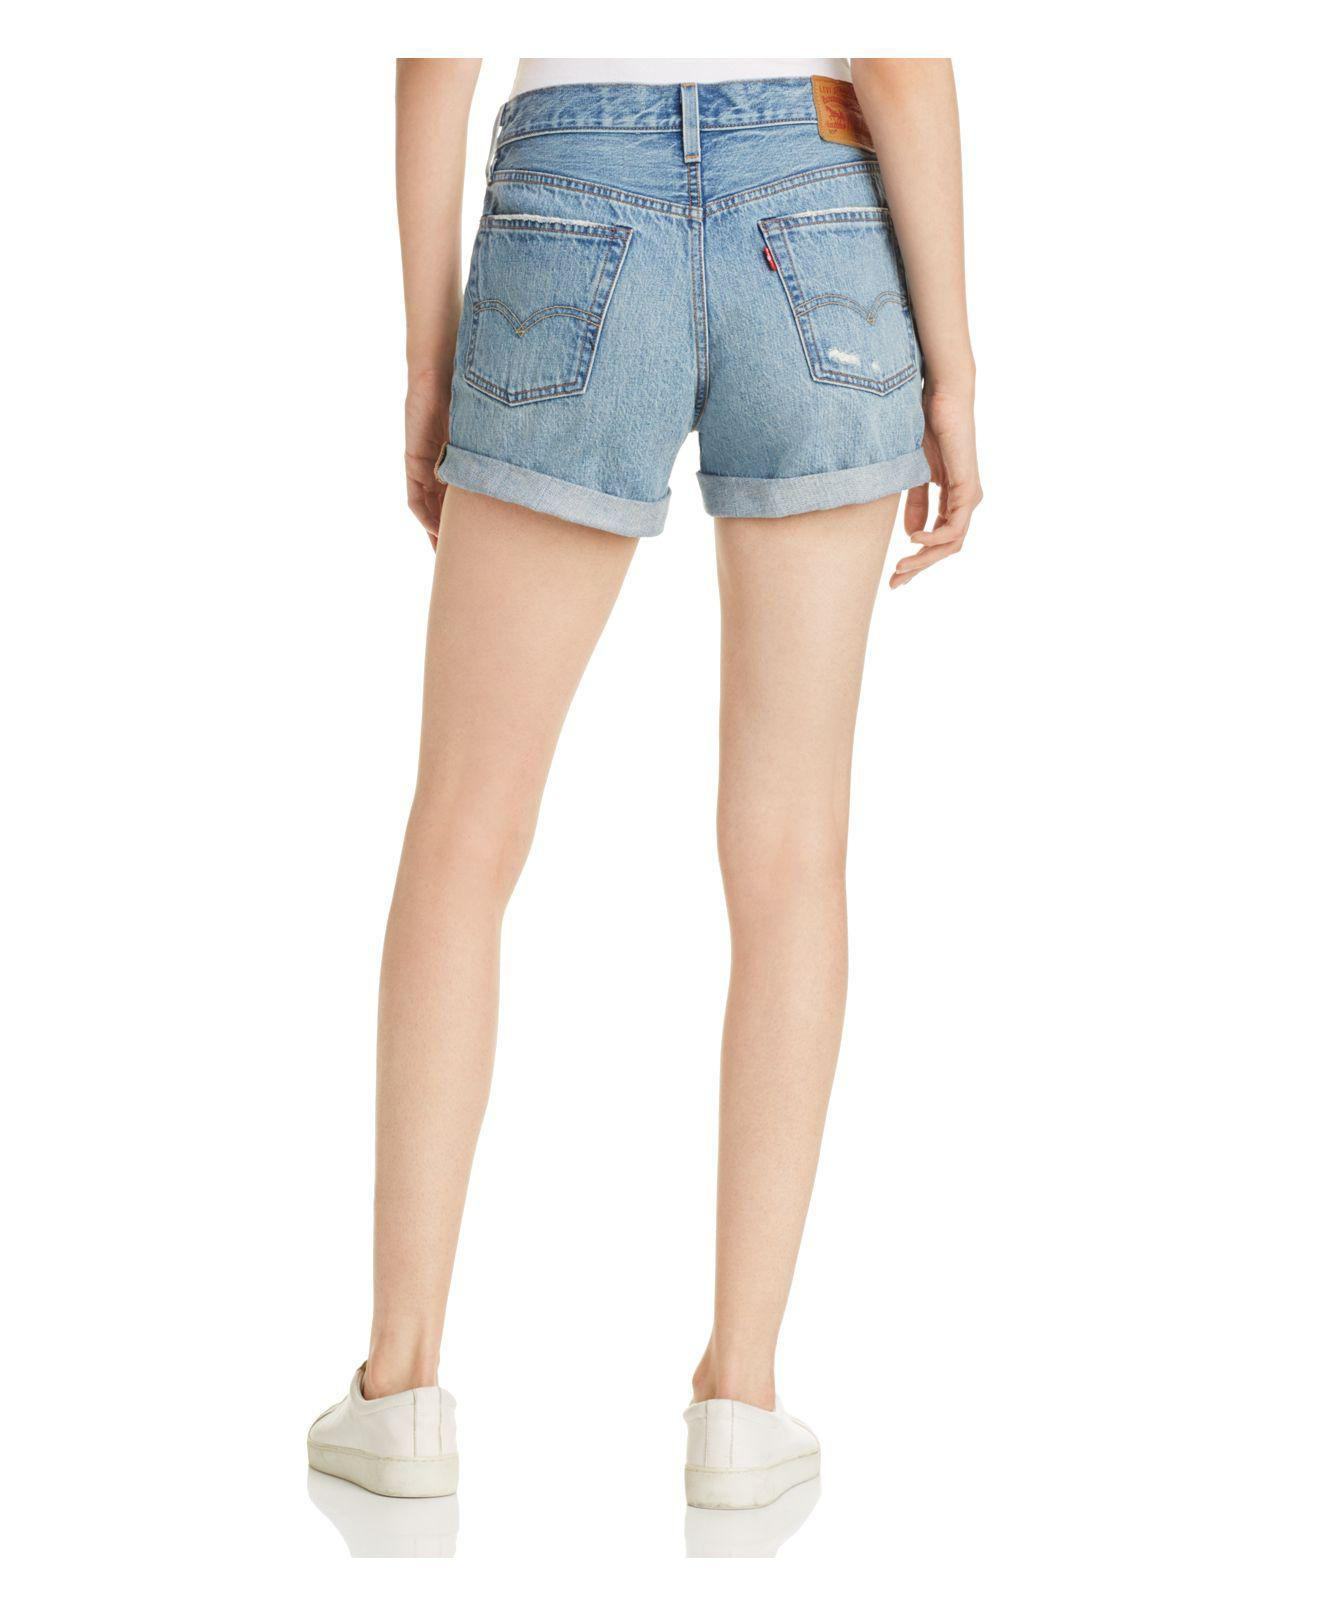 b239f7d0 Levi's 501® Cuffed Shorts In Highway Blues in Blue - Lyst